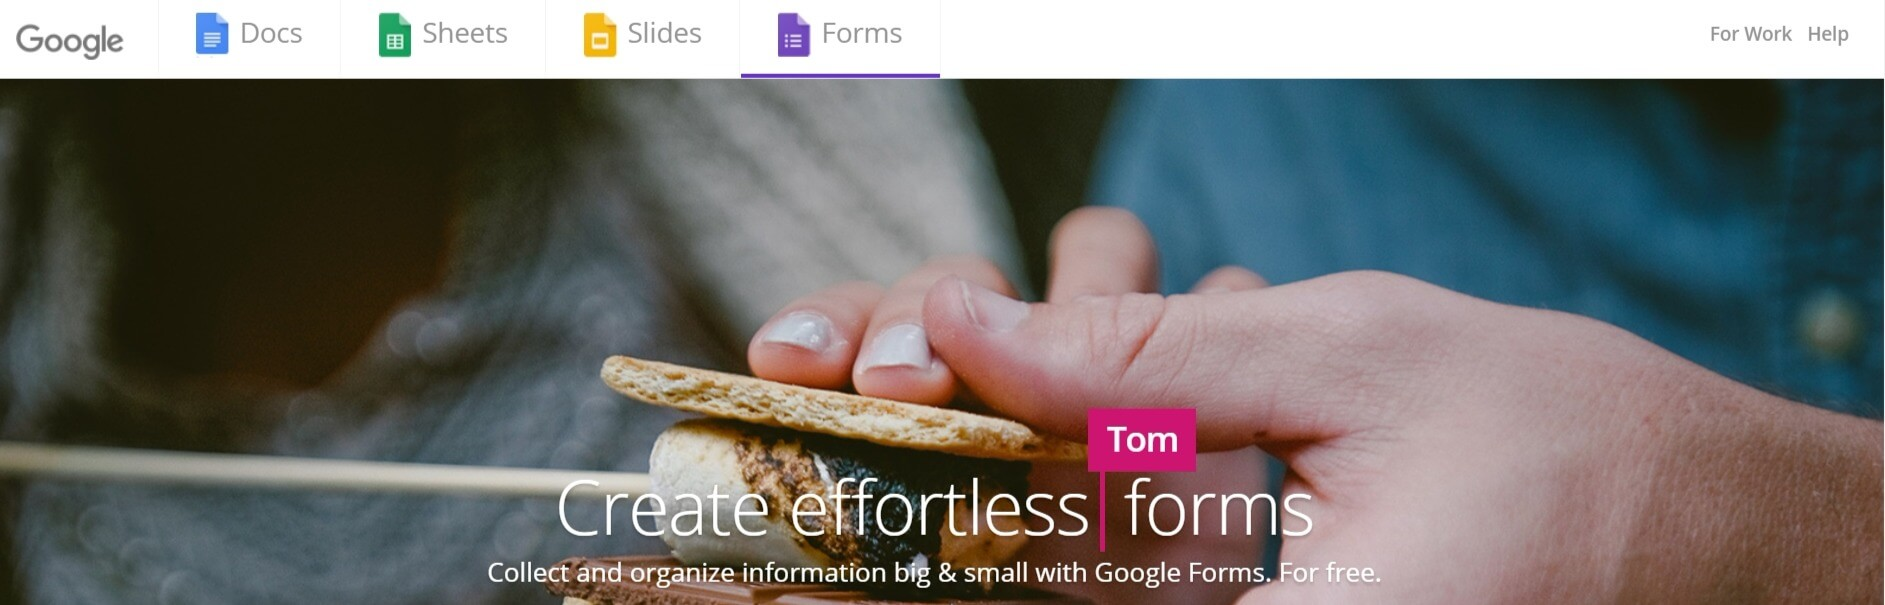 The Google Forms homepage